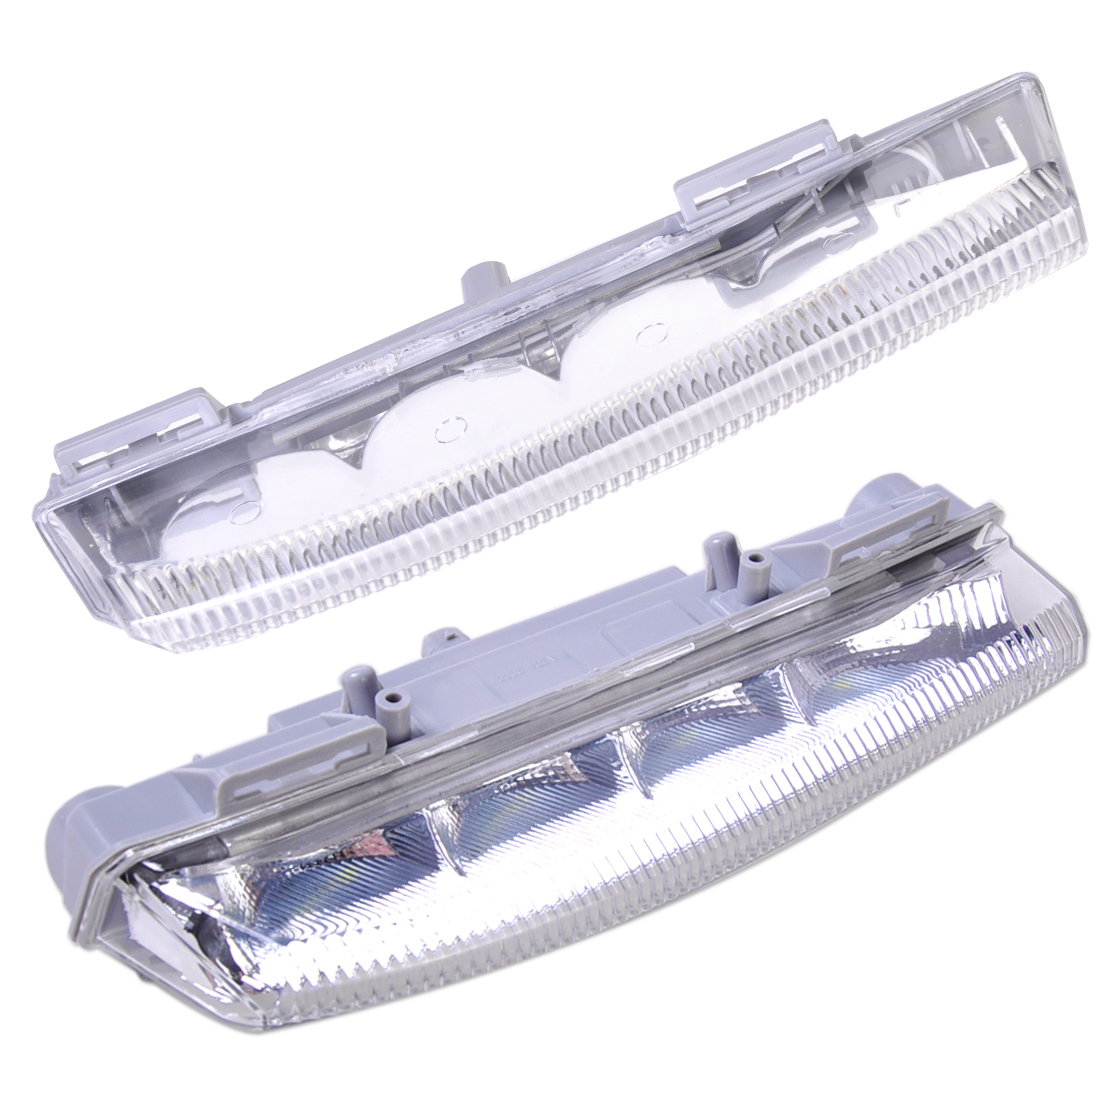 DWCX 2x Car Daytime Running Lamp Fog Light 2049068900 2049069000 for Mercedes Benz W204 2011 - 2014 W212 2013 R172 2012 - 2013 2pcs led fog lamp for benz w204 c class 11 13 car lights auto replacement daytime running lights fog lamp for mercedes for benz